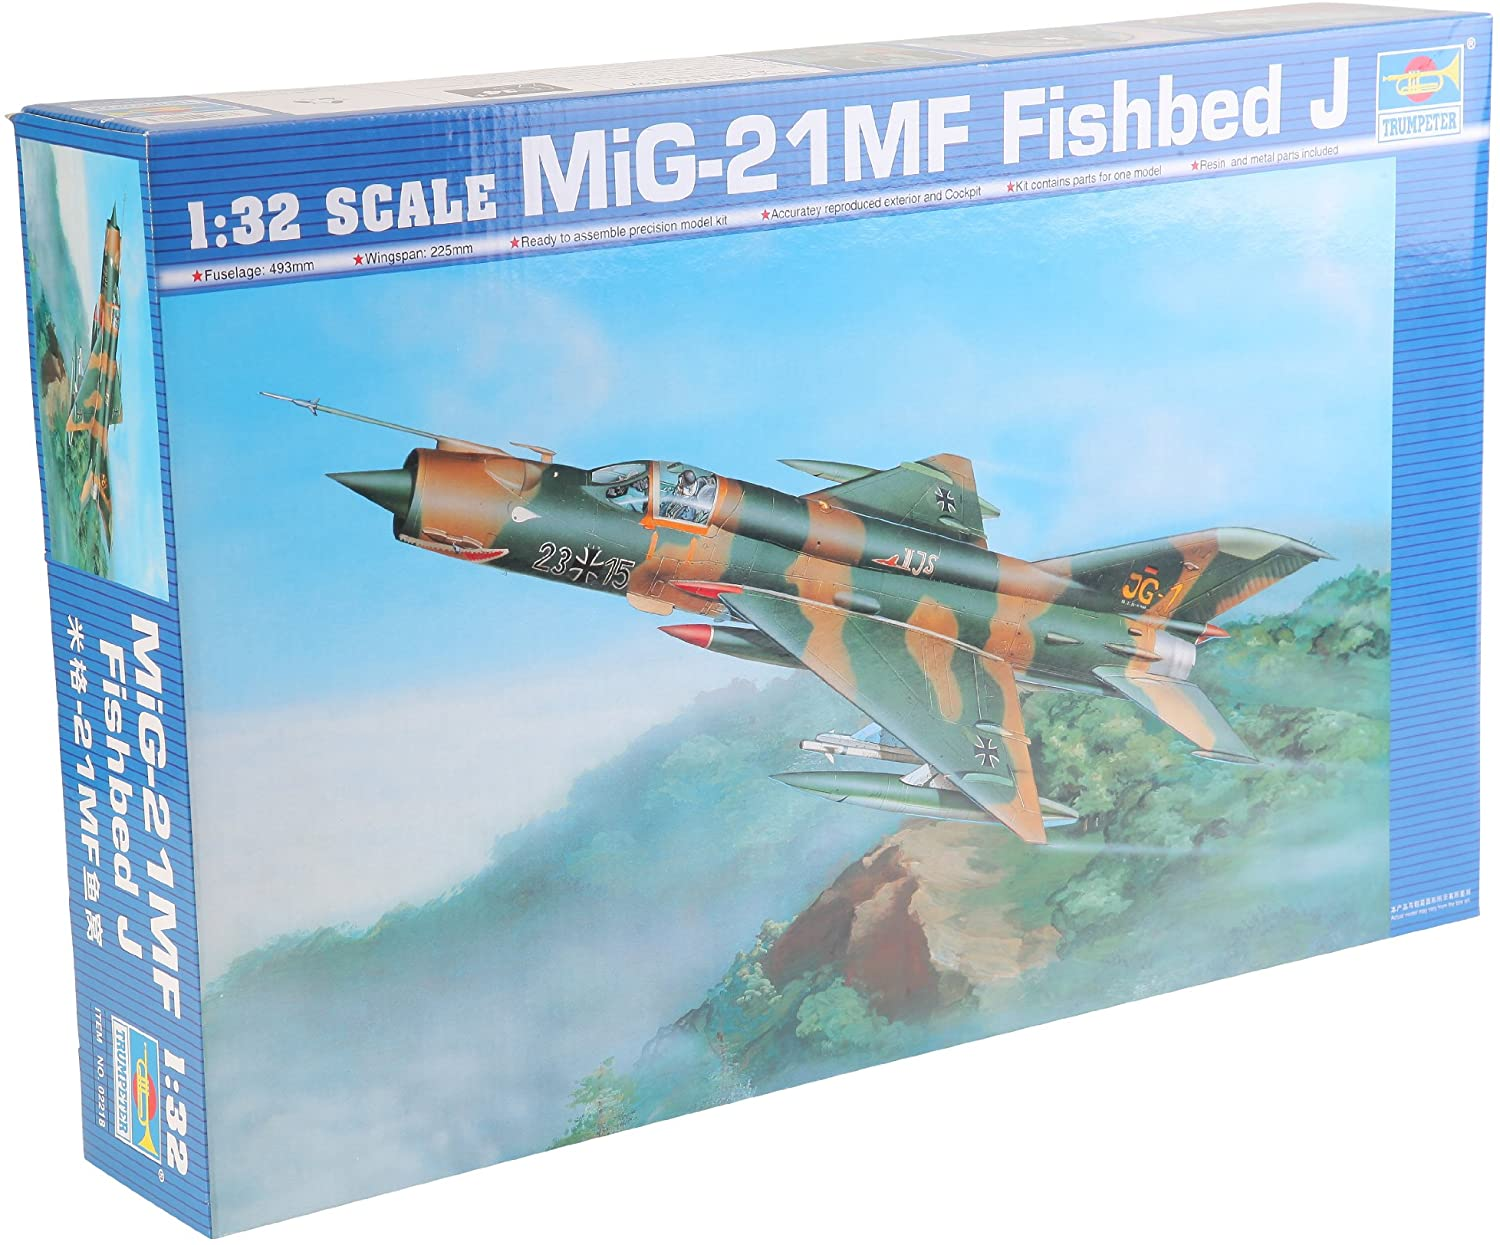 Trumpeter 1/32 Mig21 MF Fishbed J Single-Seat Tactical Fighter